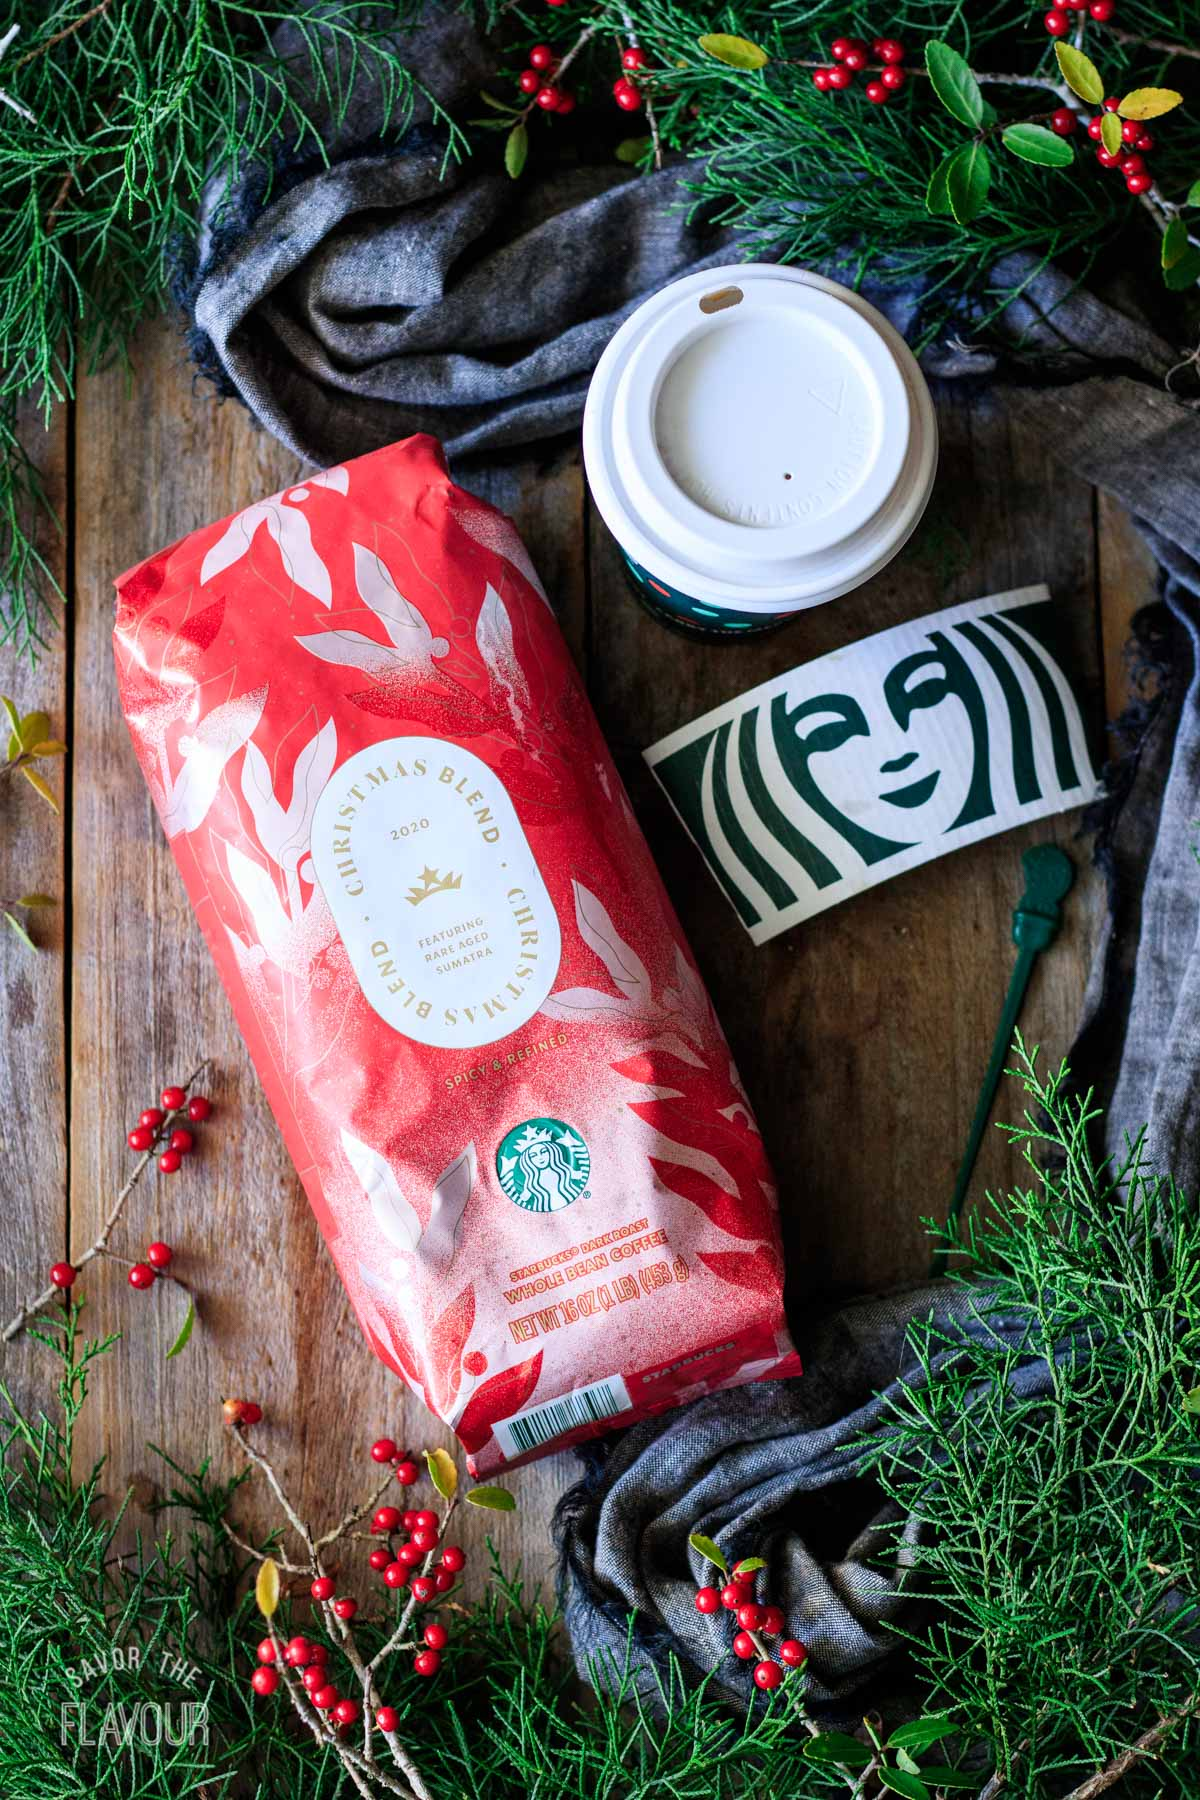 bag of Christmas blend coffee beans with a Starbucks drink